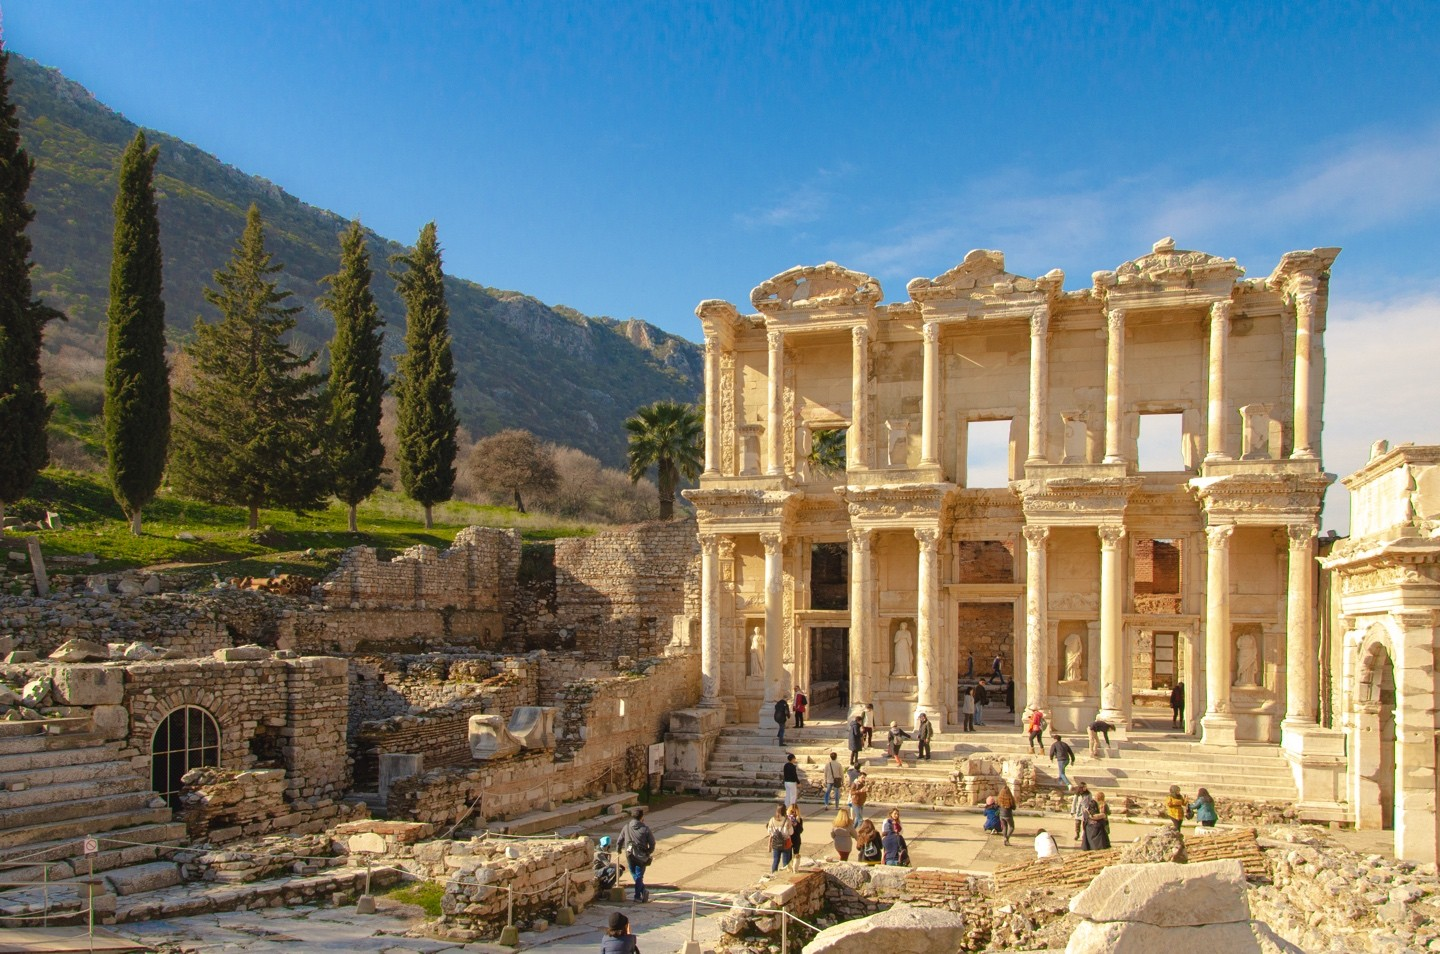 Kusadasi Port to Ephesus Ruins - Temple of Artemis - Aqua Fantasy Water Park